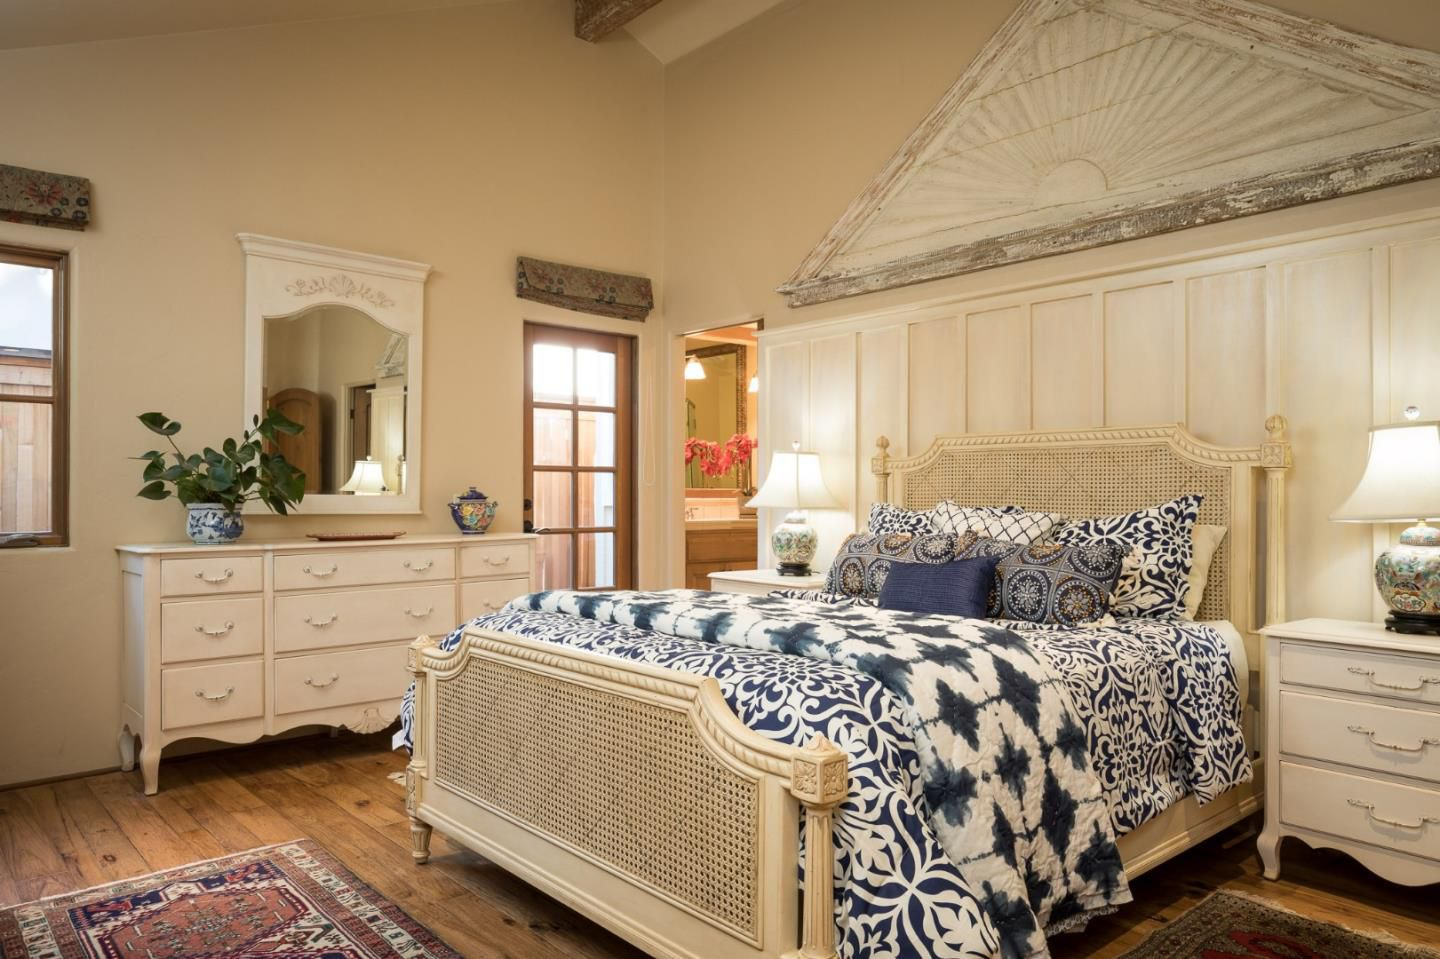 Classic Board and Batten Cottage in Carmel-by-the-Sea for sale -Bedroom with beautiful architectural wall adornment